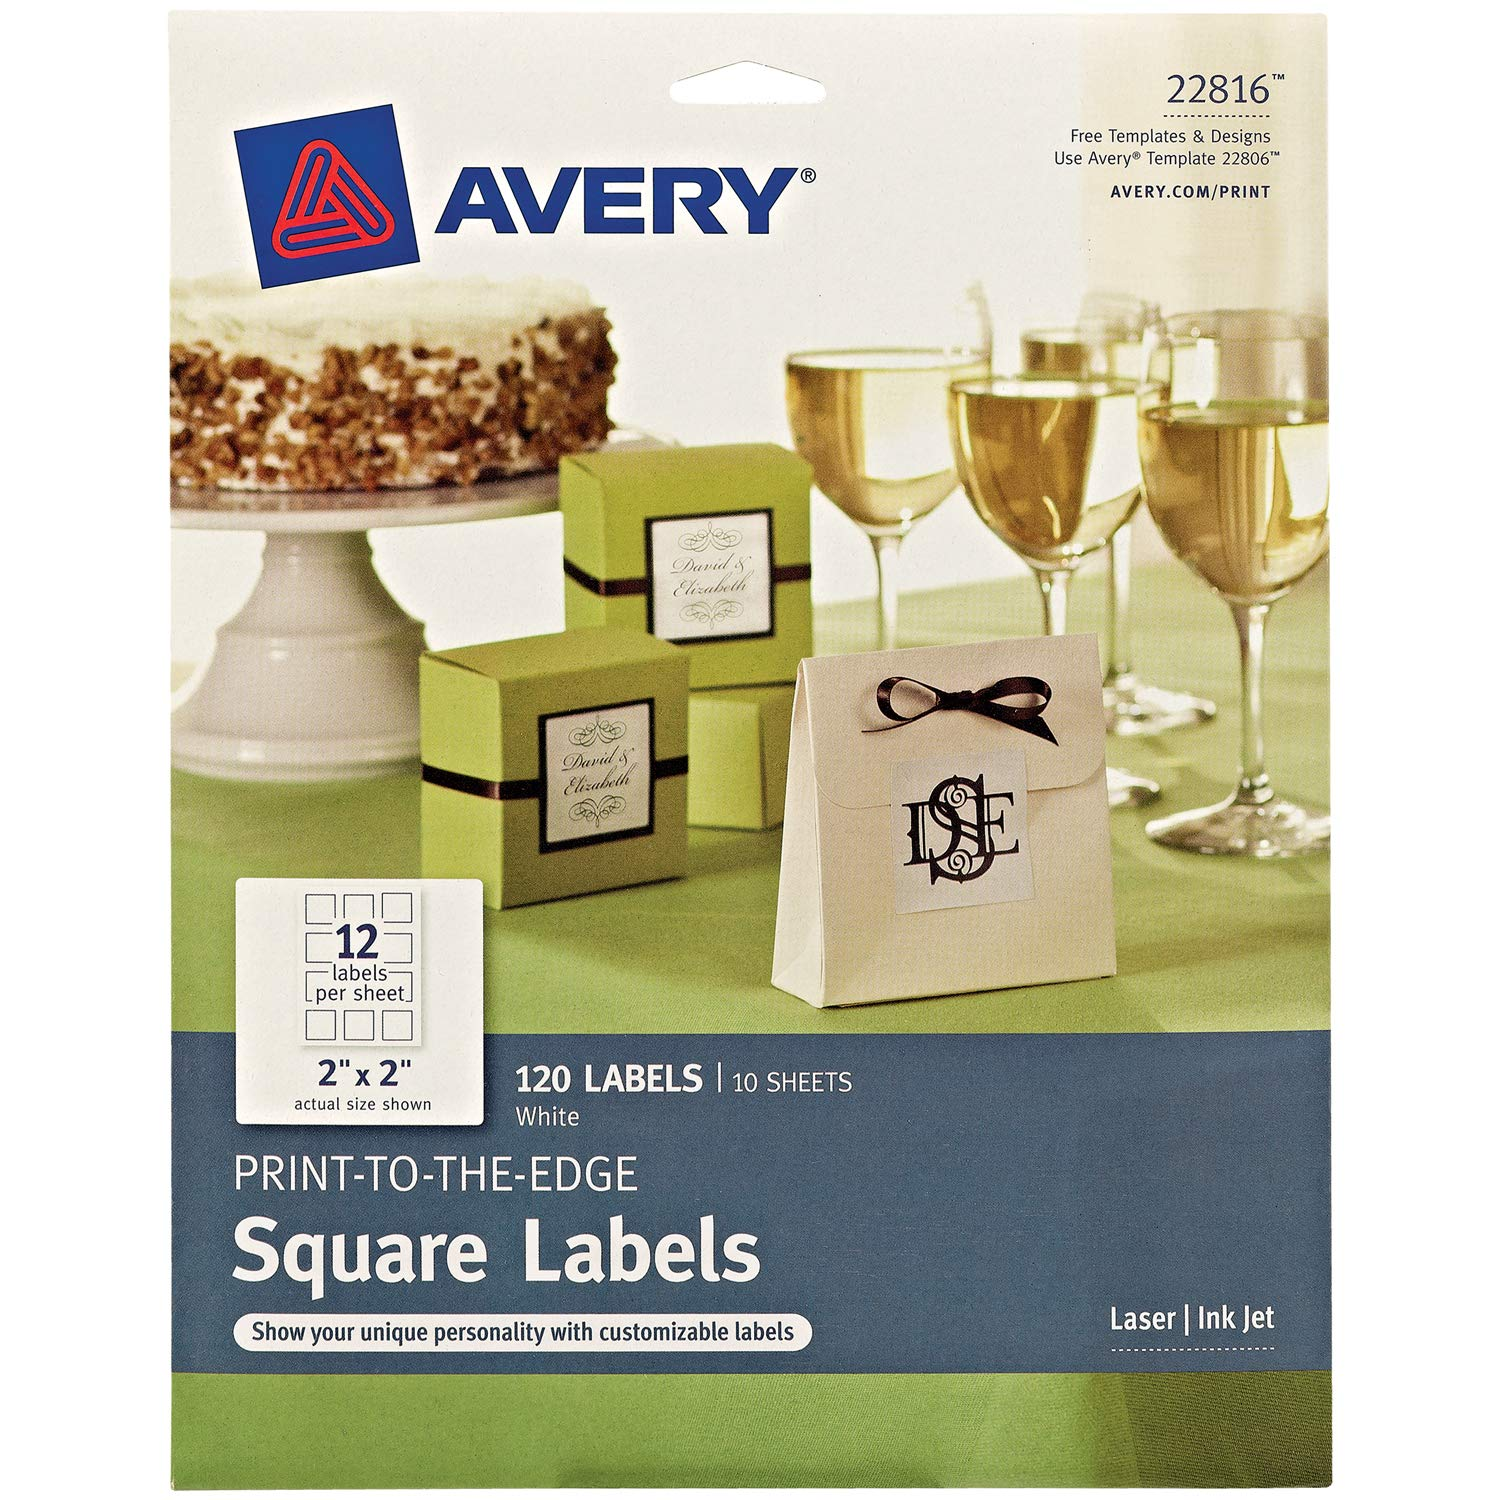 "Avery Square Labels for Laser & Inkjet Printers, Print-to-The-Edge, 2"" x 2"", 120 Labels (22816)"